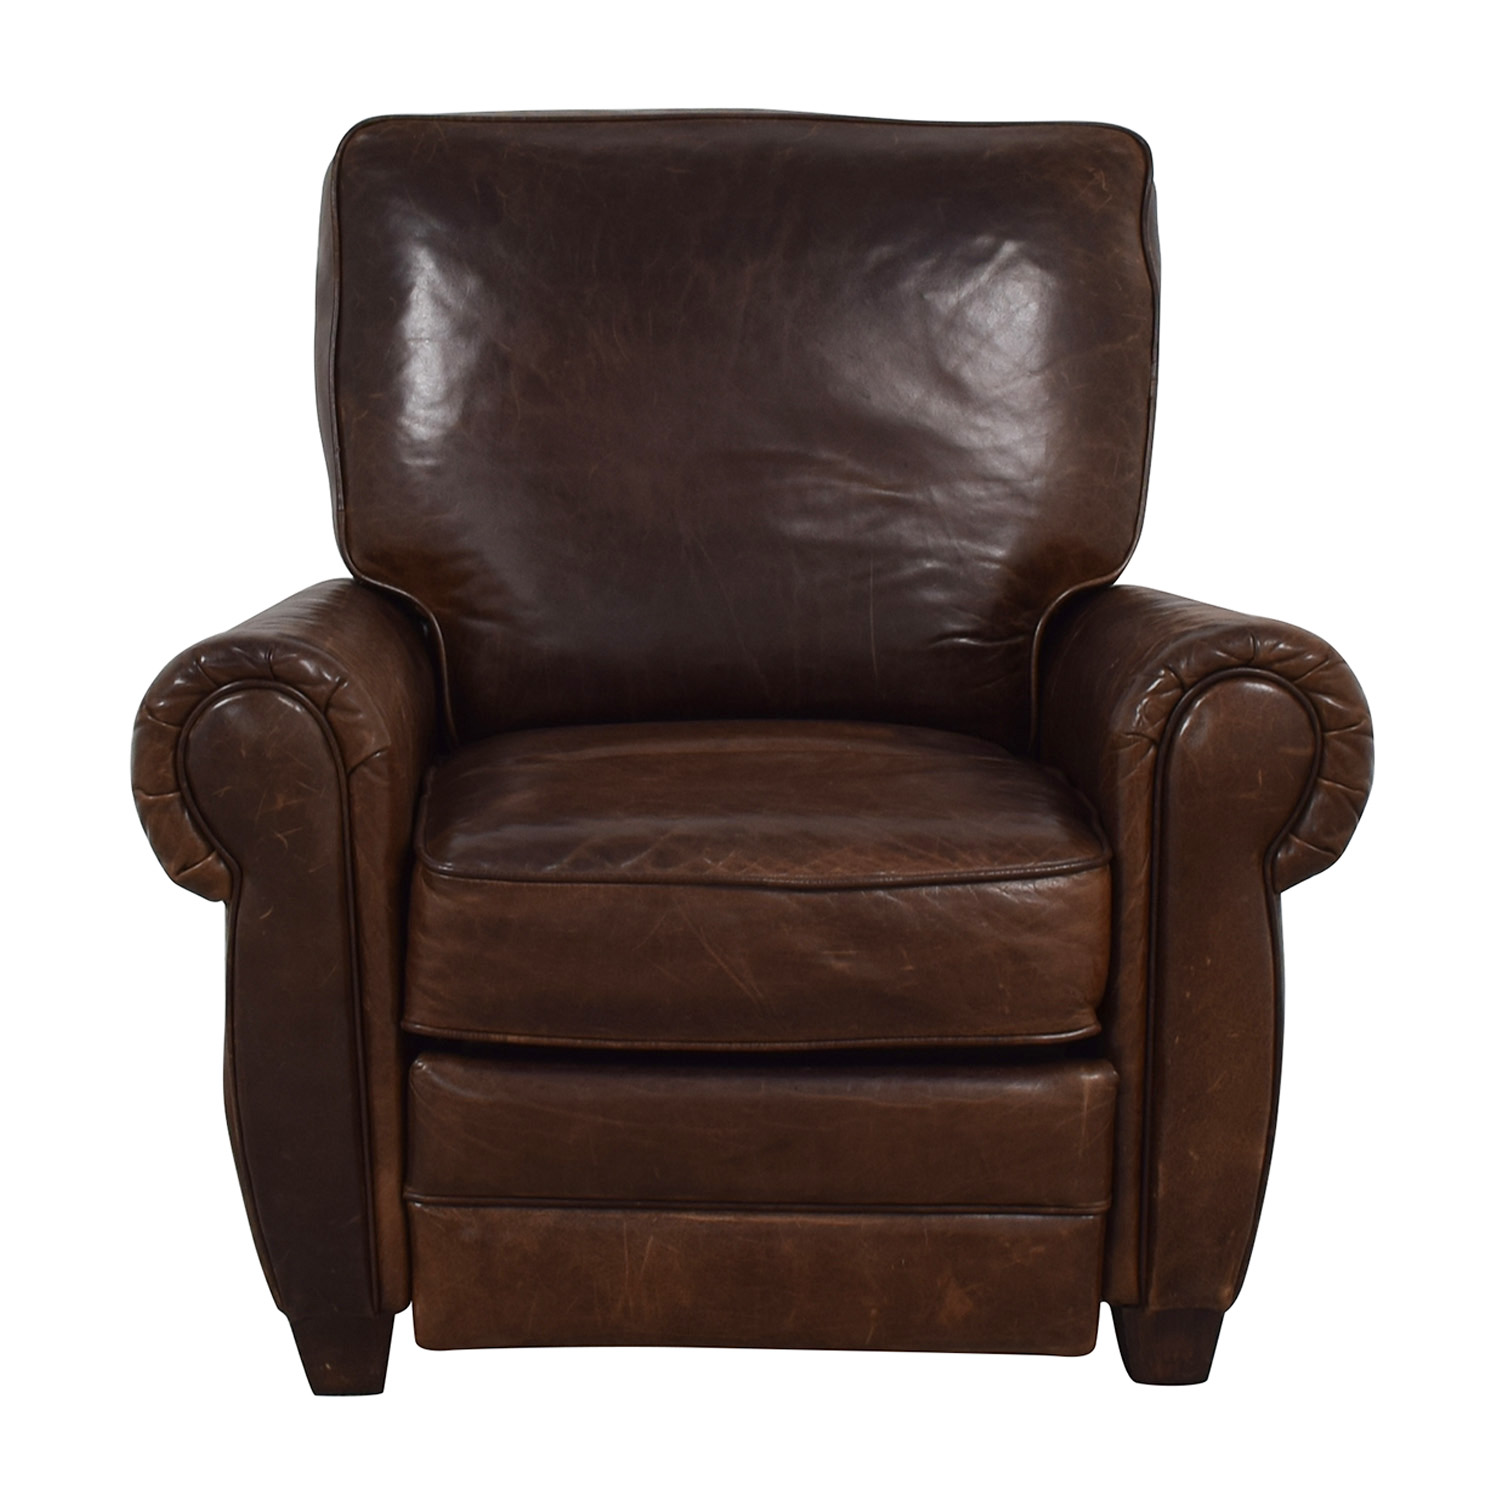 Pottery Barn Pottery Barn Brown Leather Recliner price